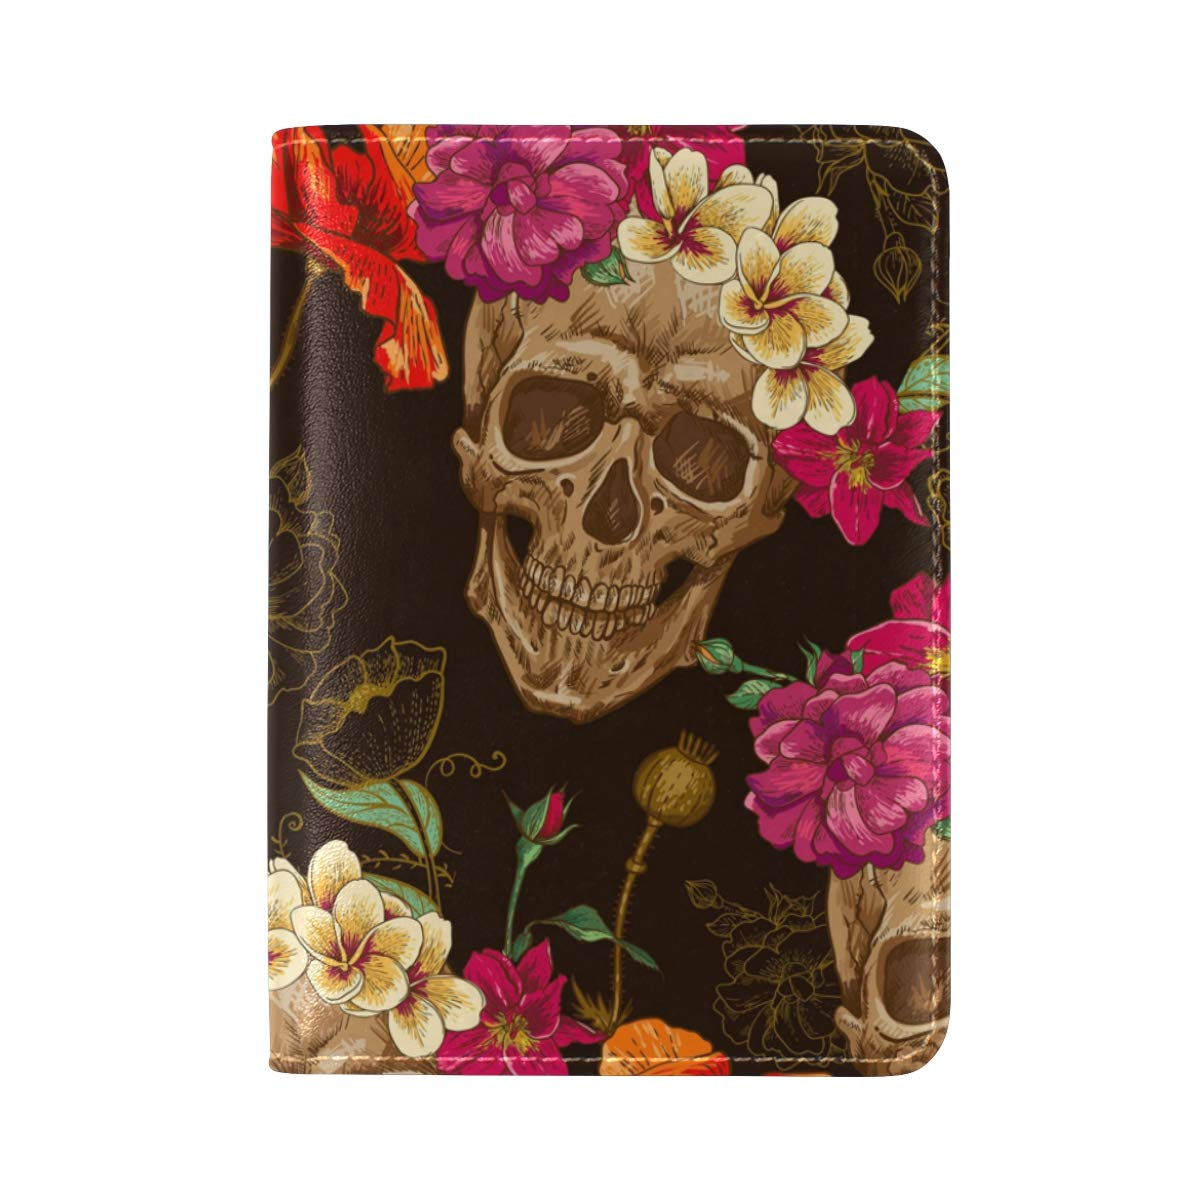 Seamless Sweat Skull And Flowers One Pocket Leather Passport Holder Cover Case Protector for Men Women Travel